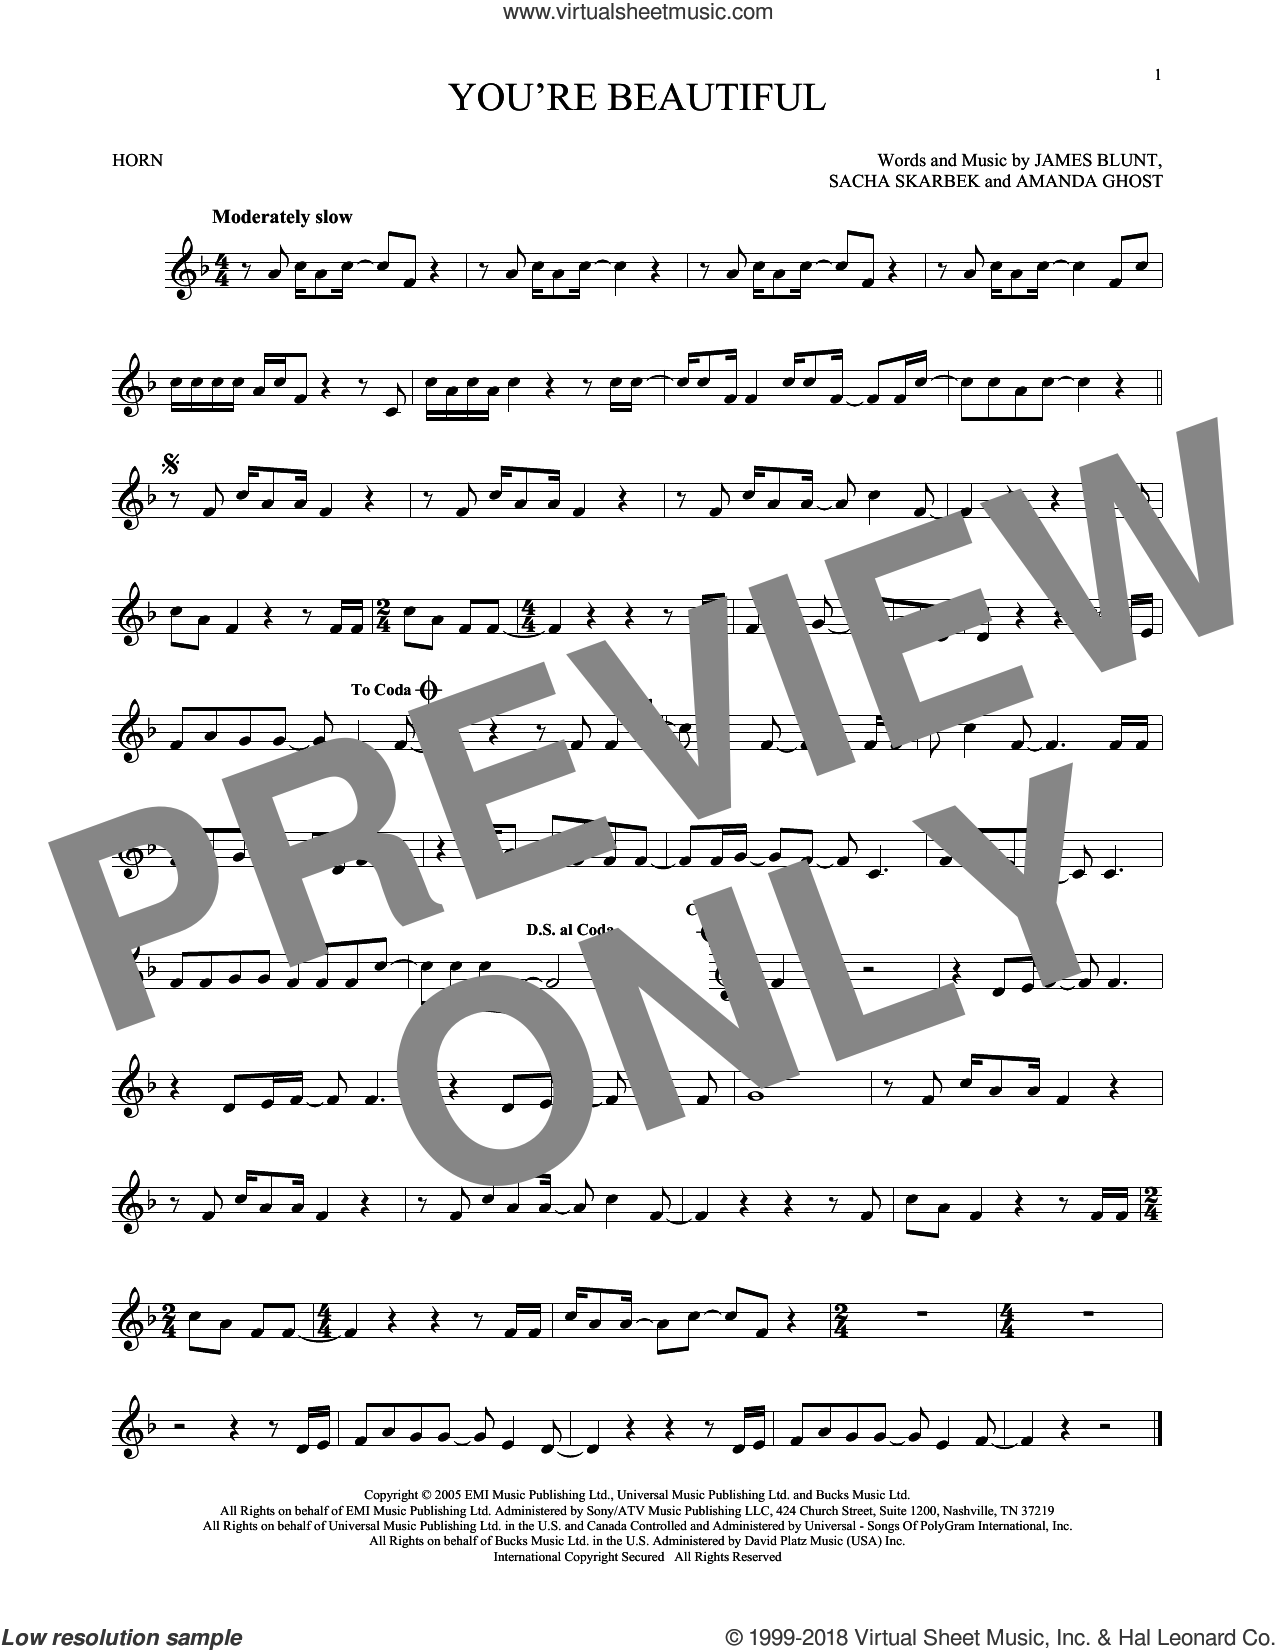 You're Beautiful sheet music for horn solo by James Blunt, Amanda Ghost and Sacha Skarbek, intermediate skill level